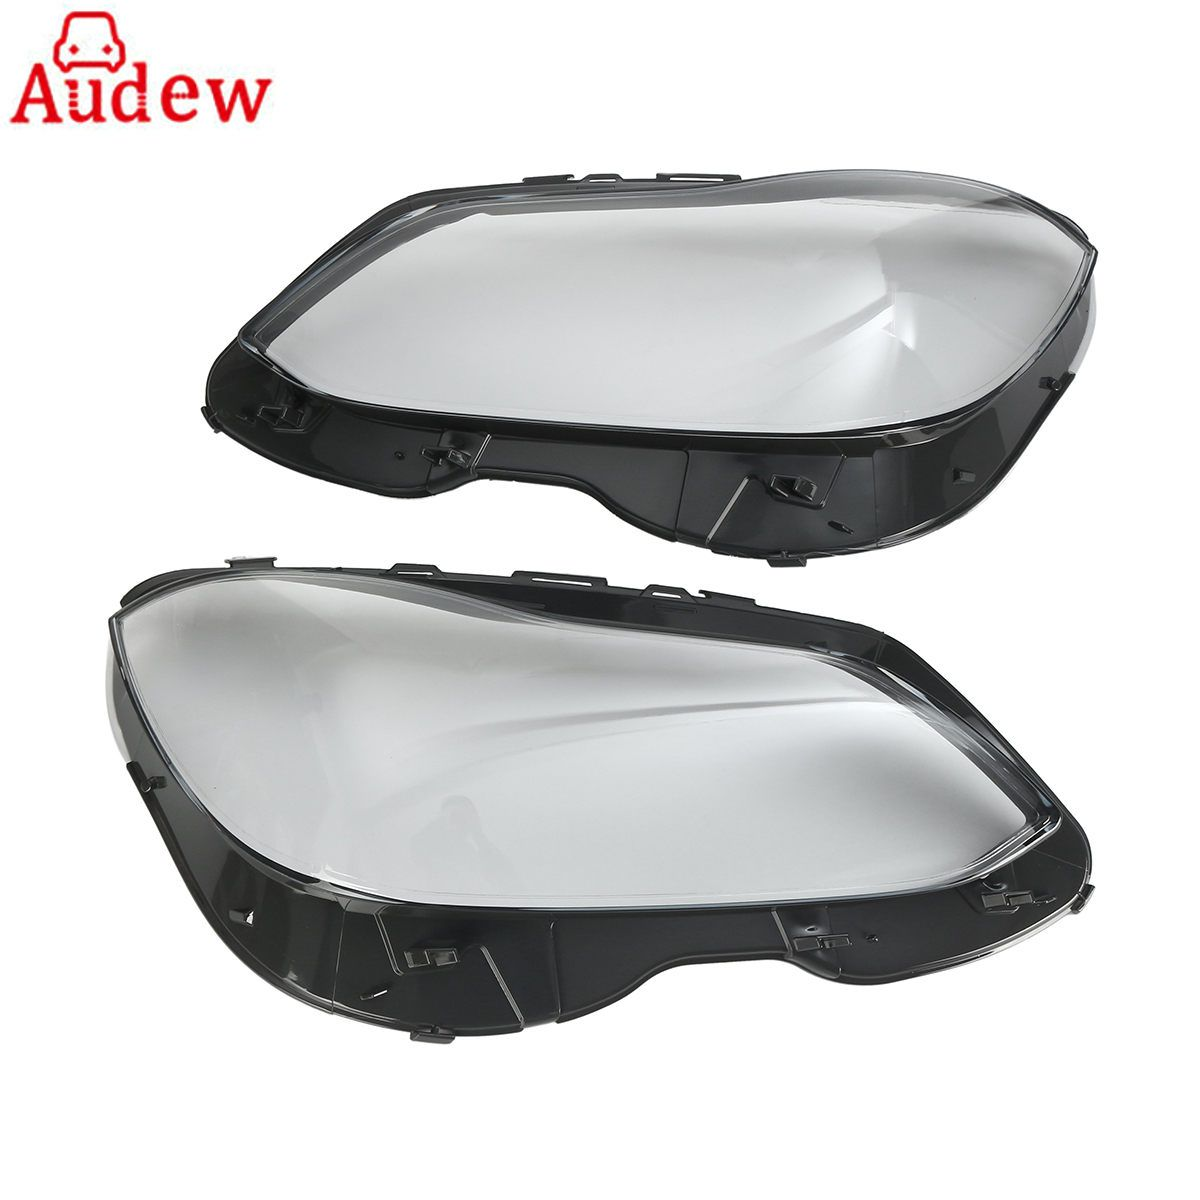 1Pair Car Front Headlight Headlamp Lens Plastic Covers Clear Lens For Mercedes-Benz E W212 Facelift QT